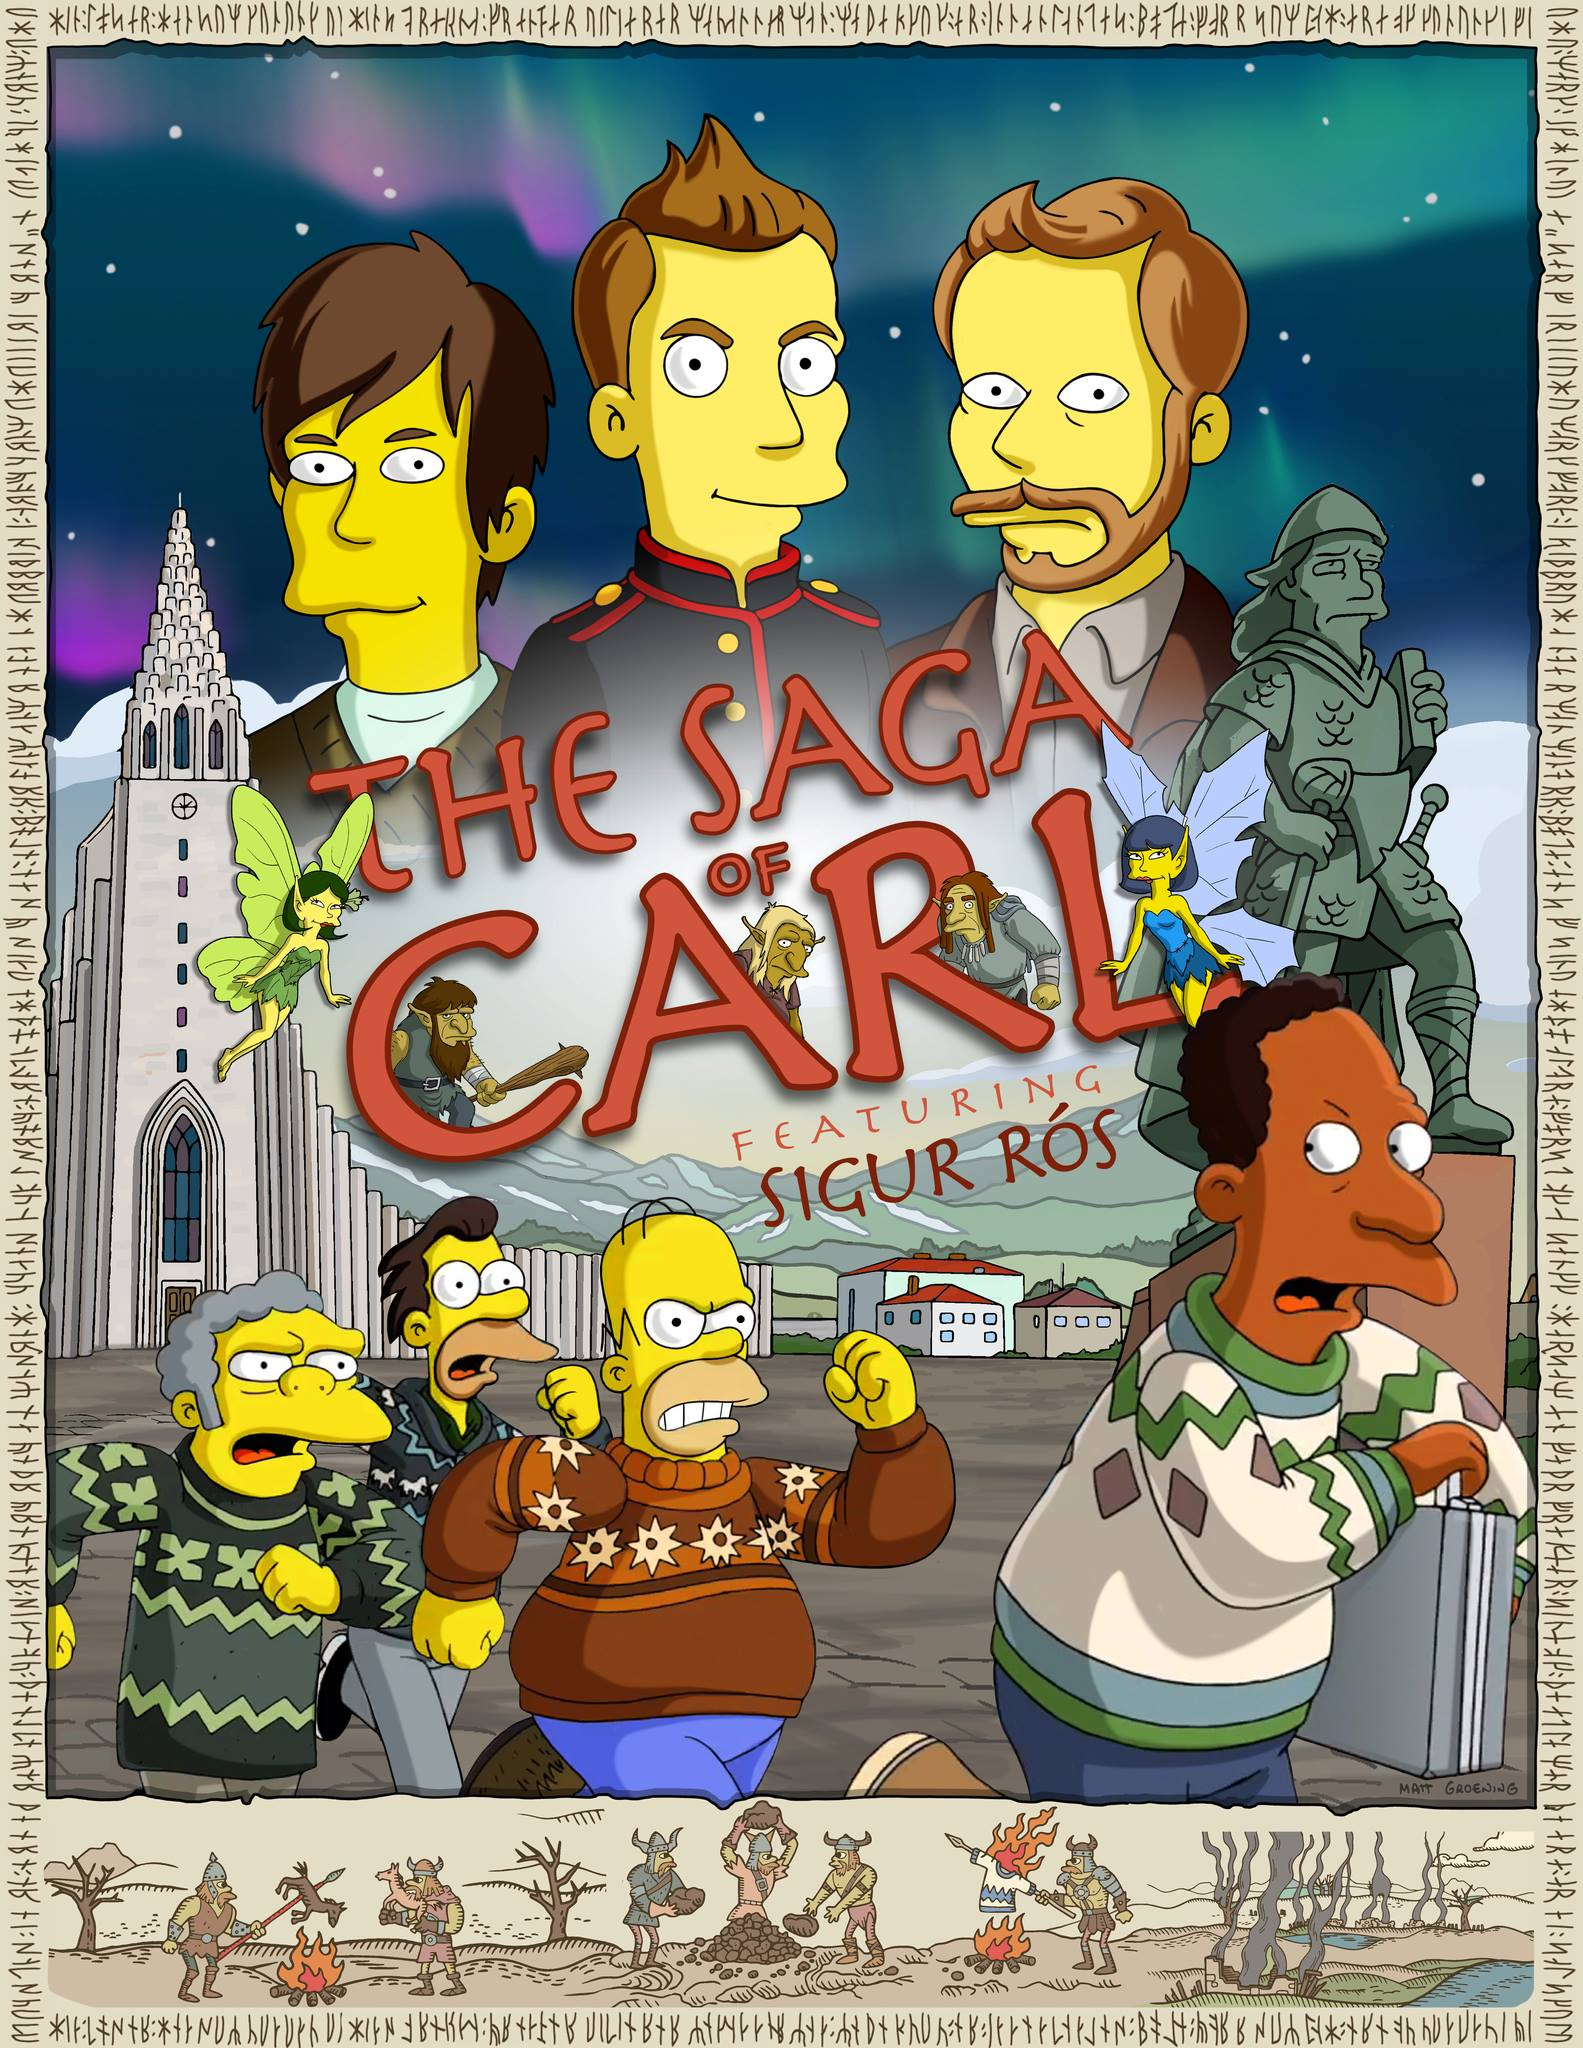 The Saga of Carl promo 4.jpg